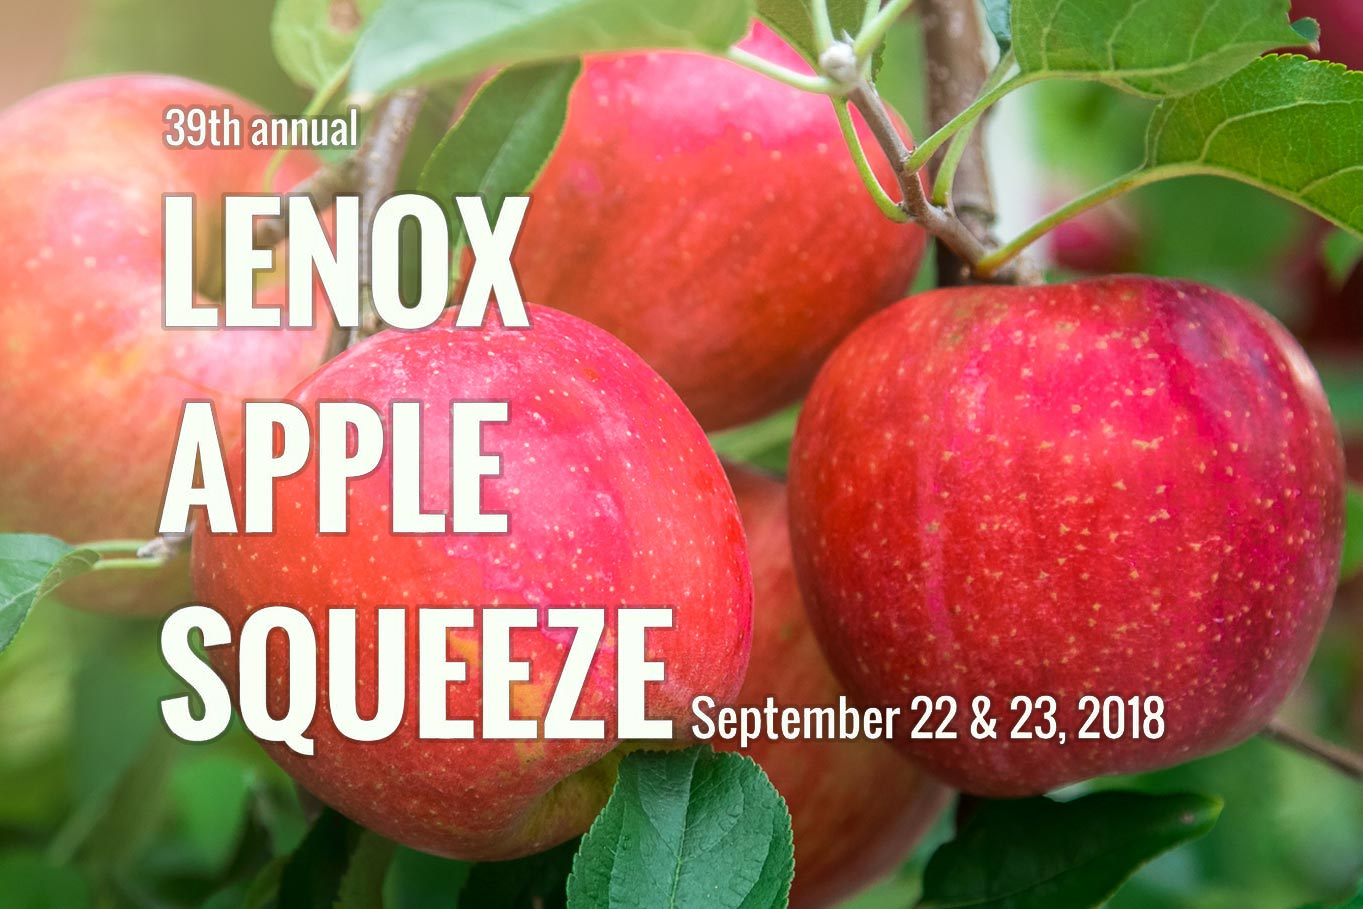 Lenox Apple Squeeze 2018